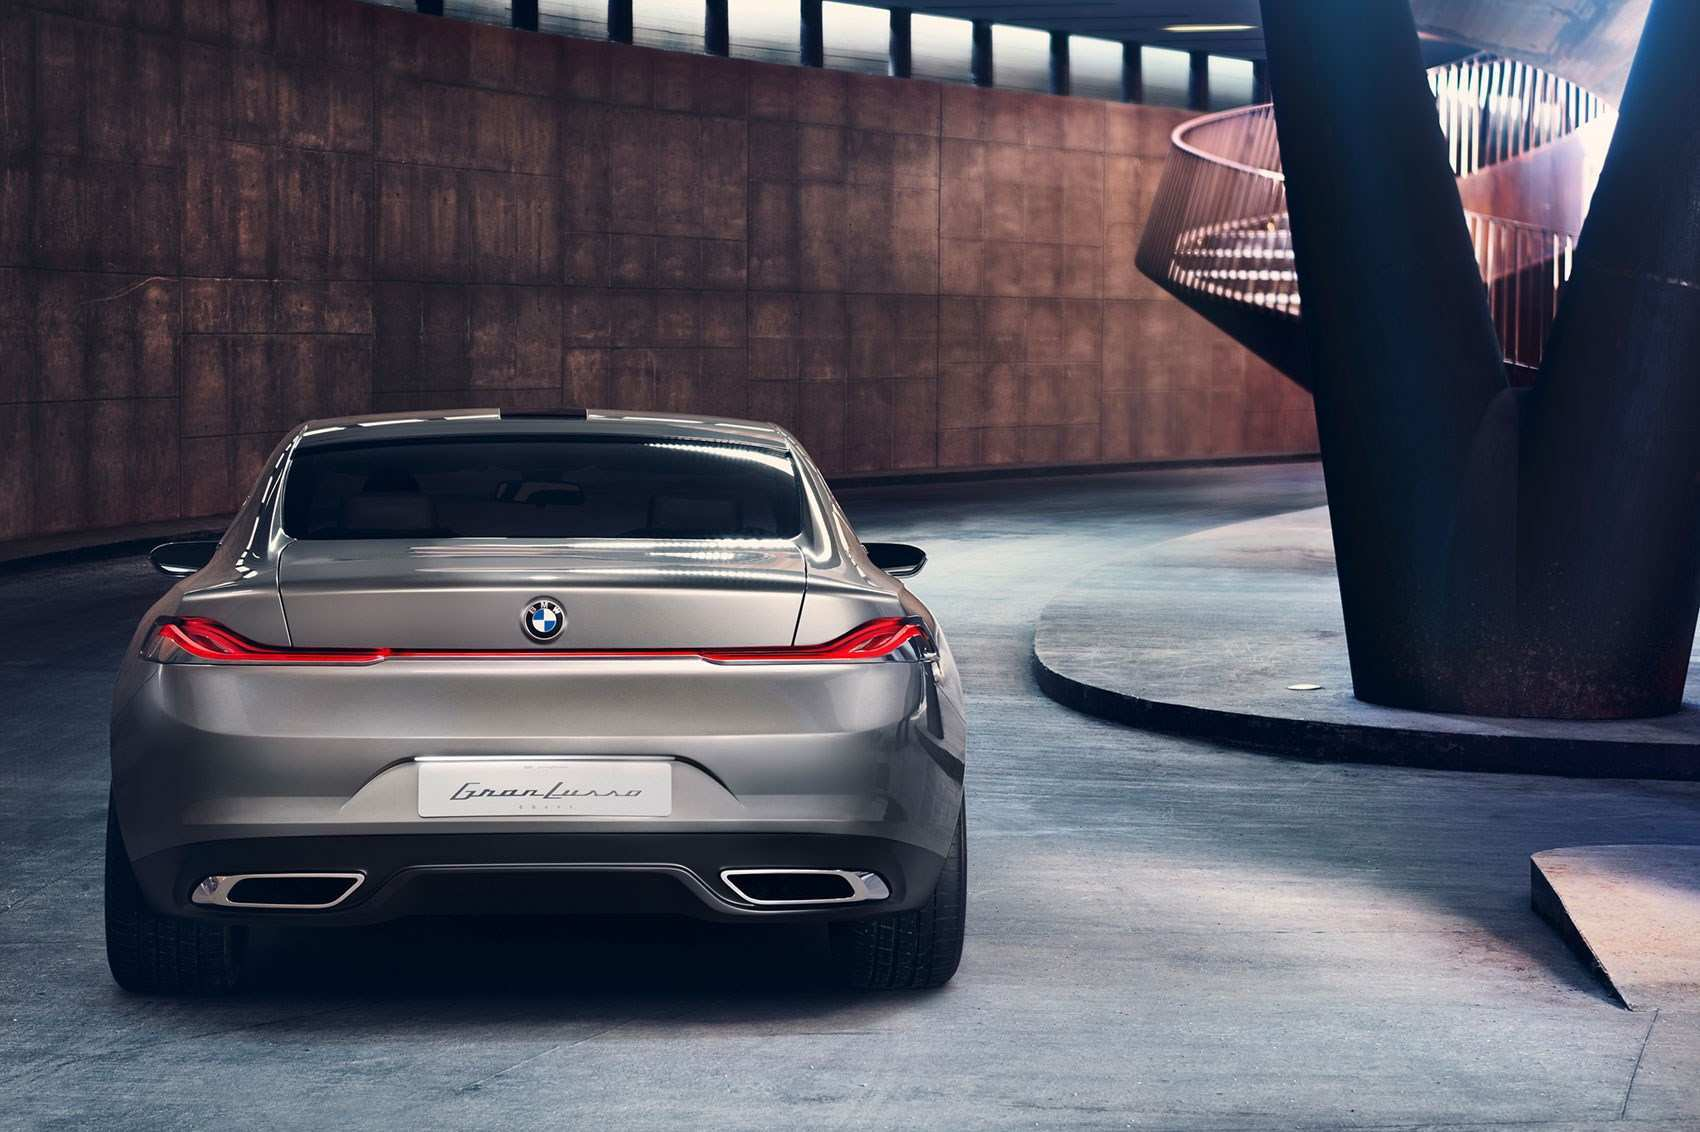 41 All New BMW Future Cars 2020 Specs and Review by BMW Future Cars 2020